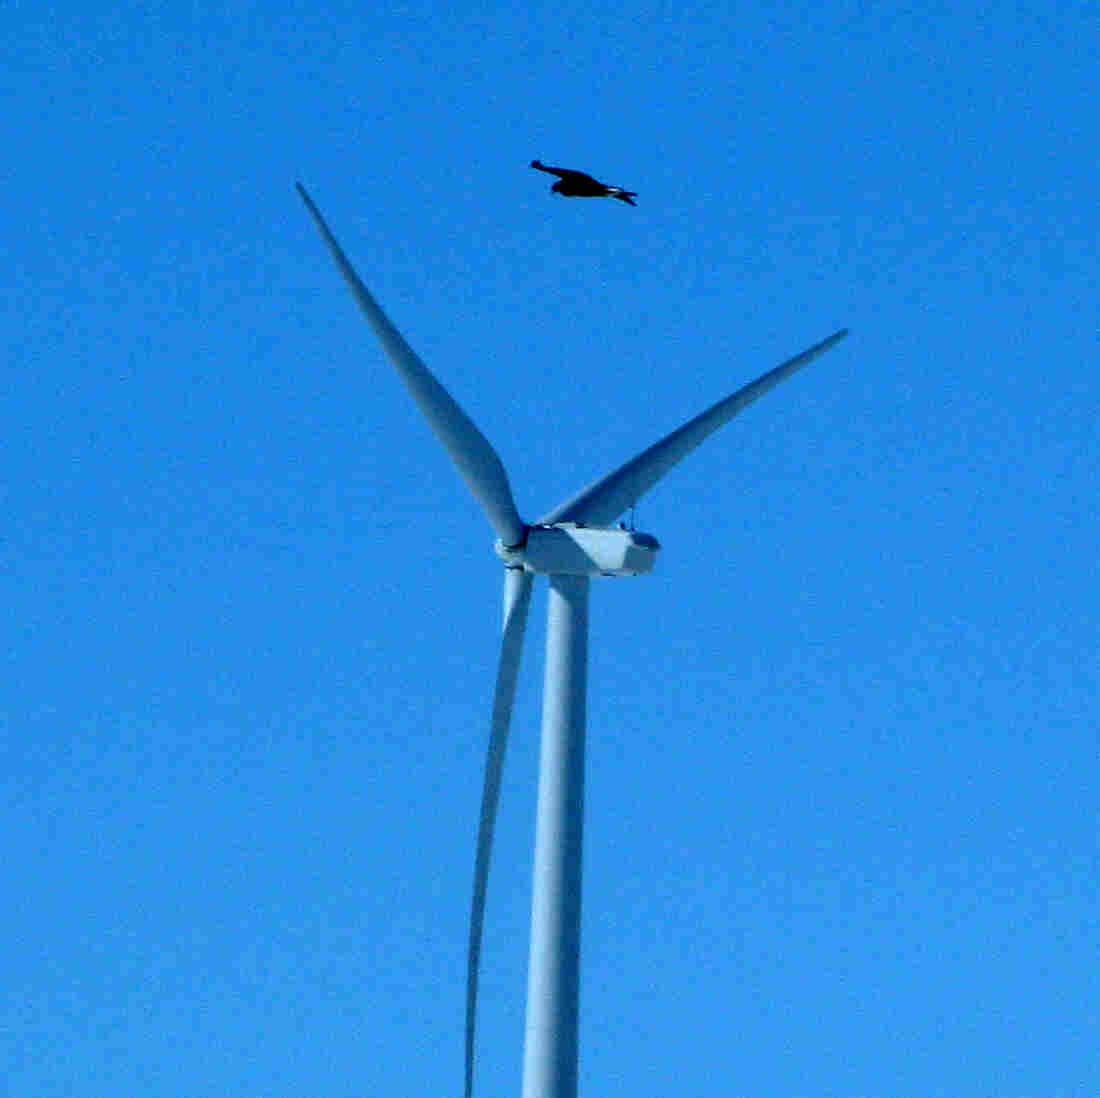 Duke Energy Pleads Guilty Over Eagle Deaths At Wind Farms